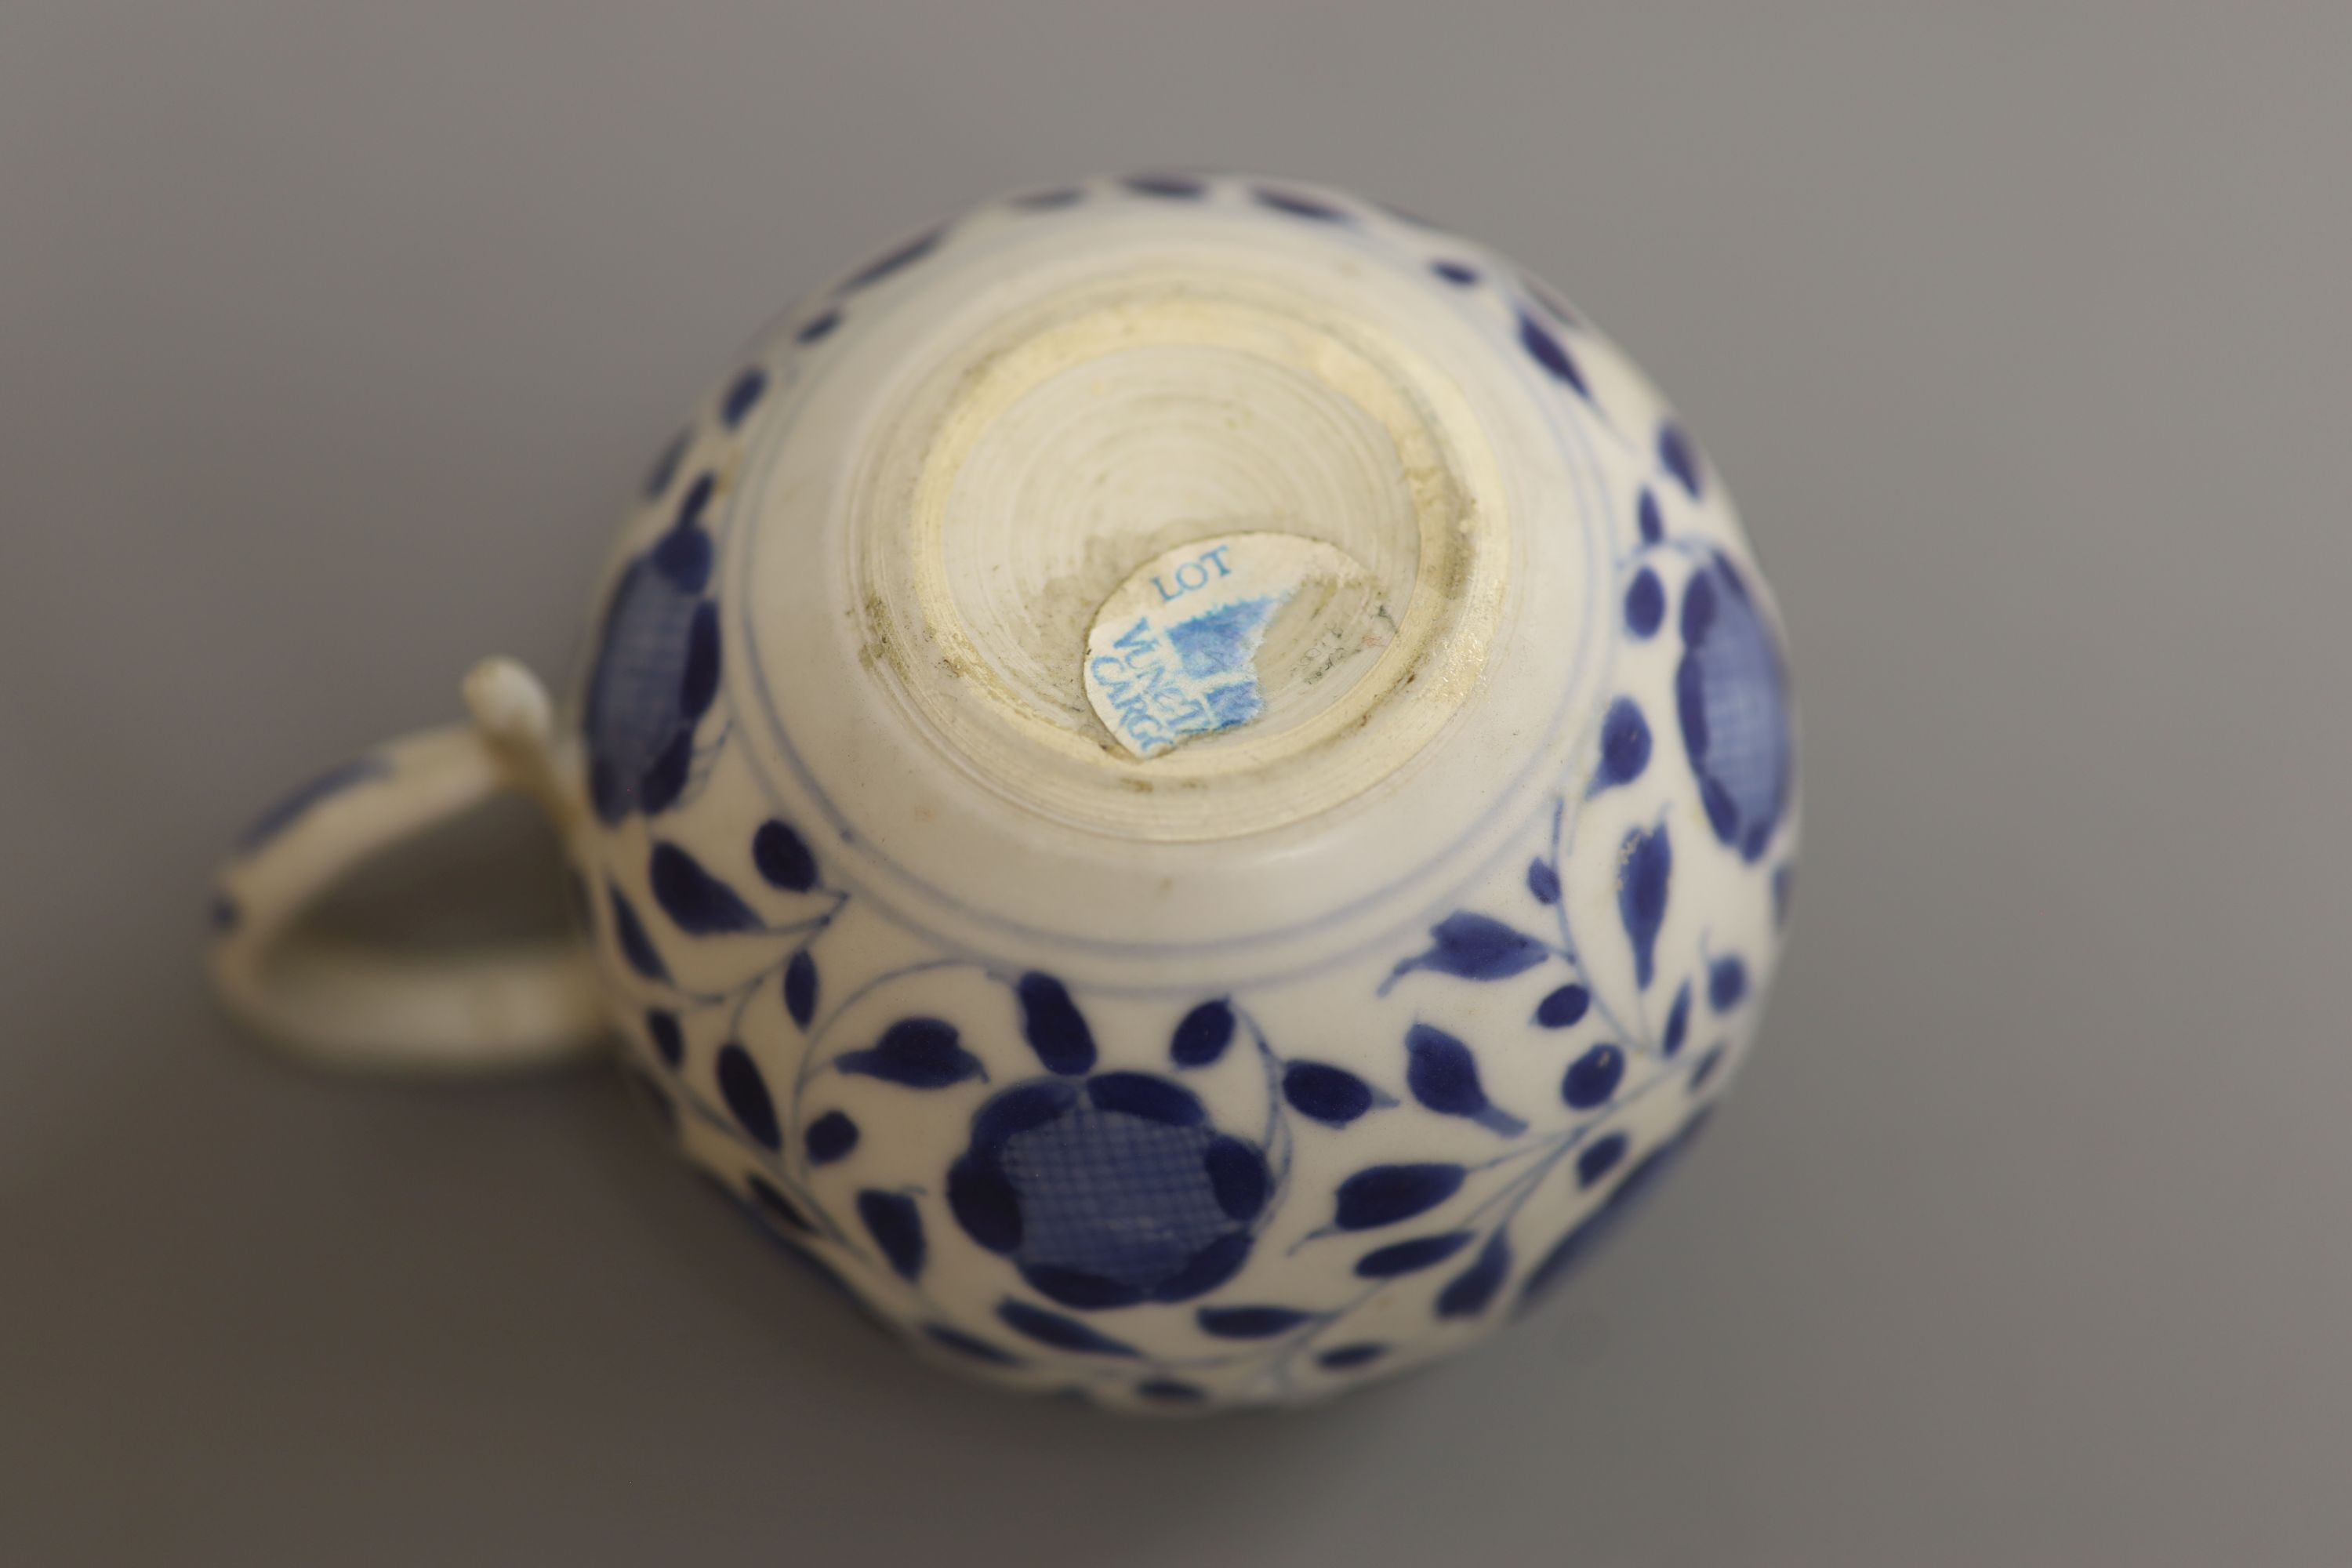 A Chinese Vungtao cargo blue and white mustard pot and cover, height 9cm - Image 7 of 7